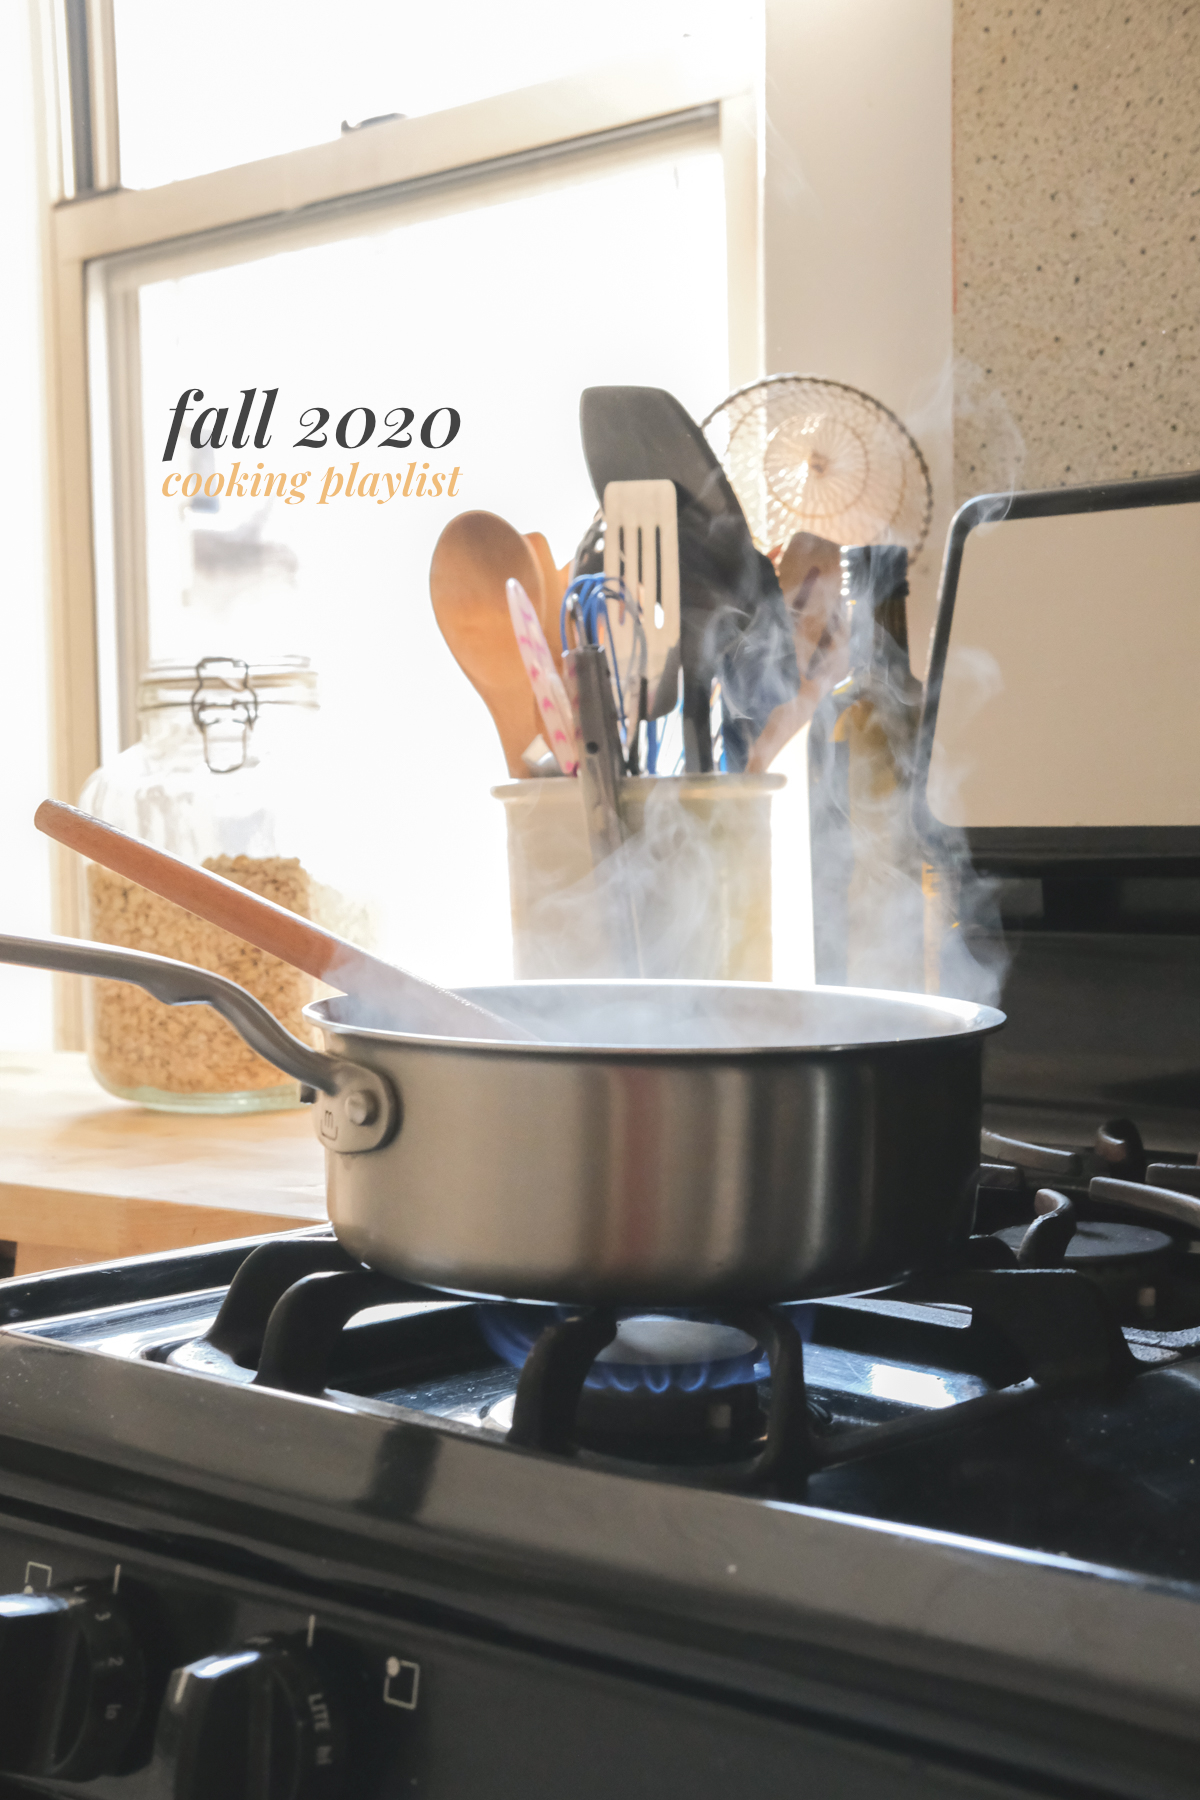 fall 2020 cooking playlist